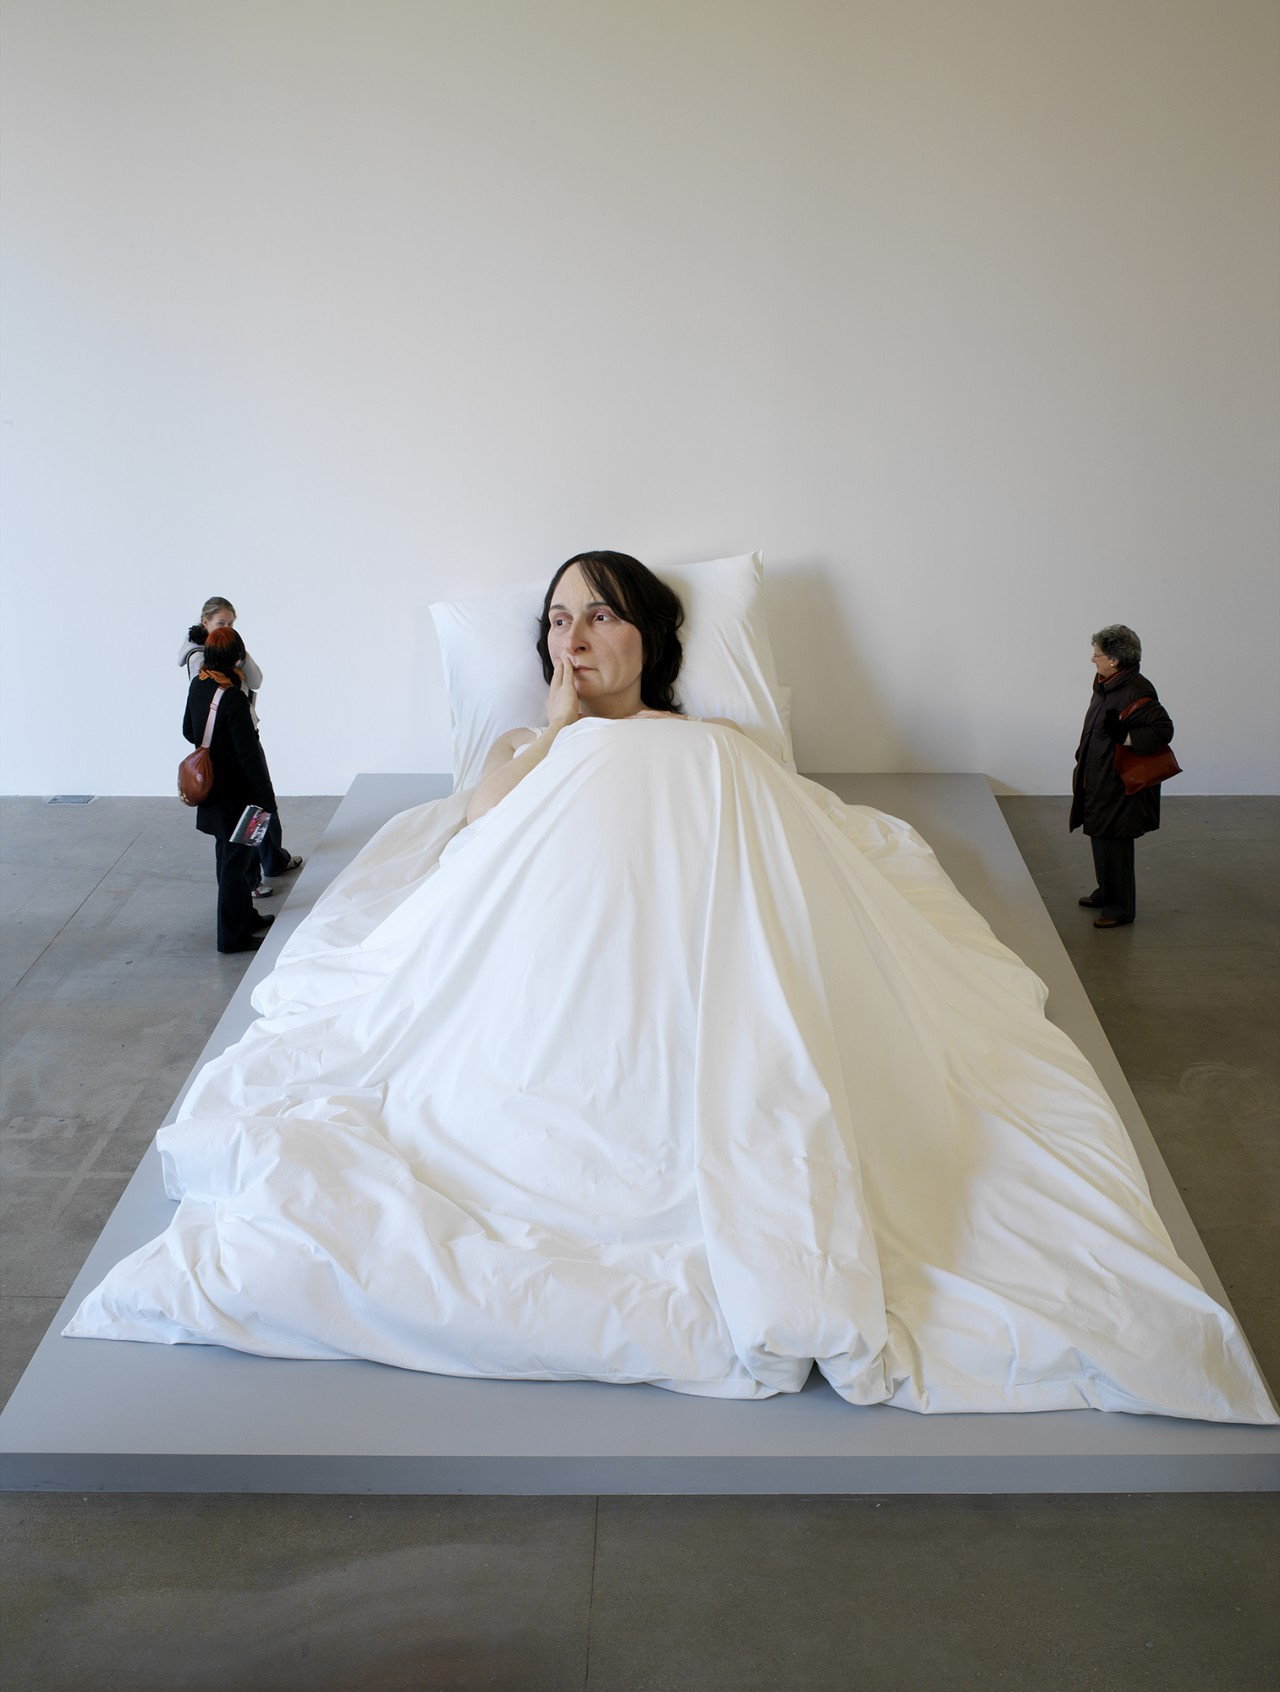 Patrick Gries Ron Mueck<br/>Fondation Cartier pour l&#8217;art contemporain 2006